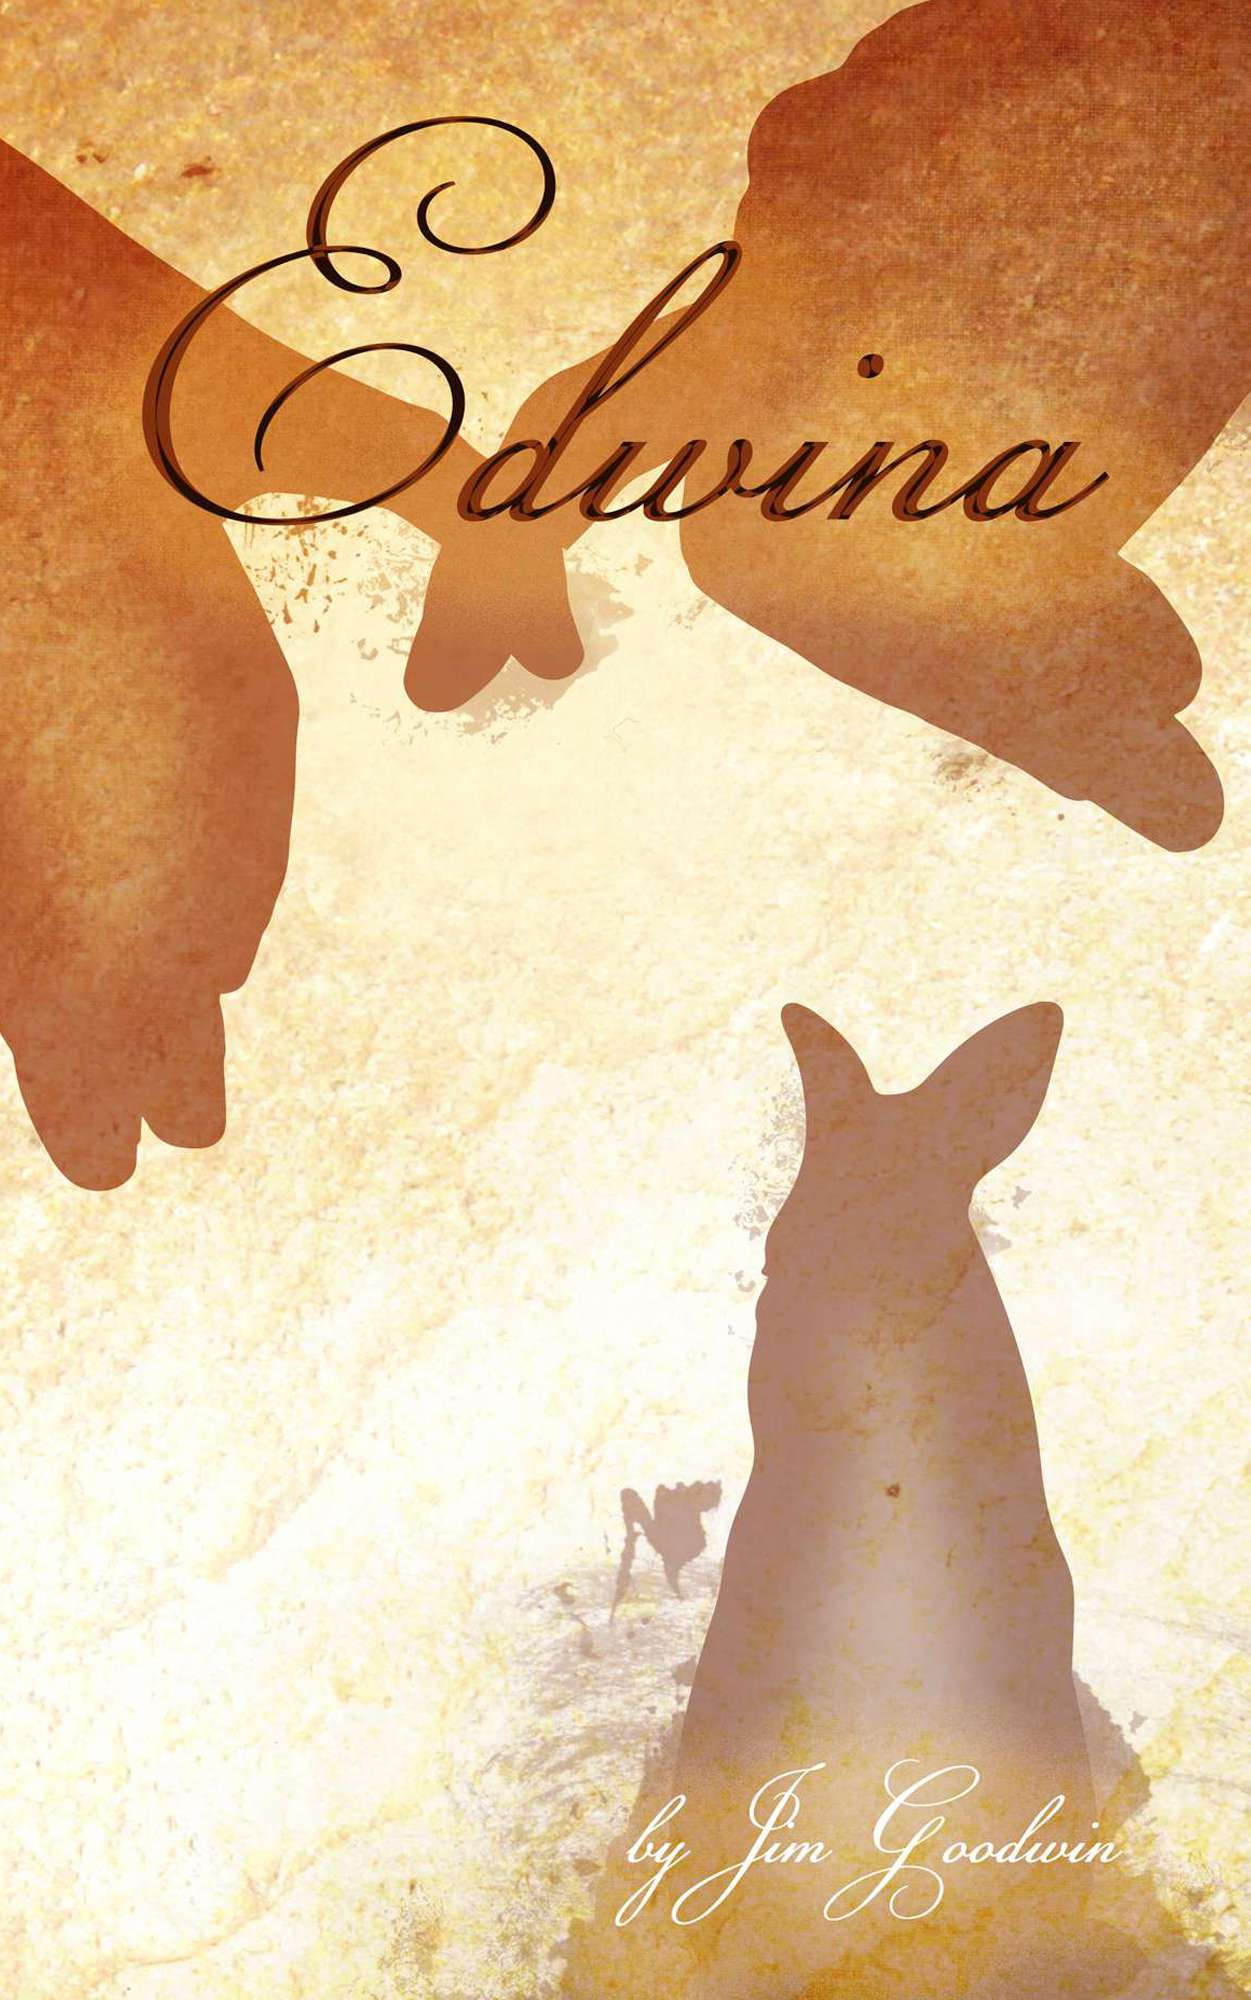 "The cover art for the romance fictional novel: ""Edwina"". Written by Author Jim Goodwin. Featuring a warm Rabbit below two fingers gently touching."